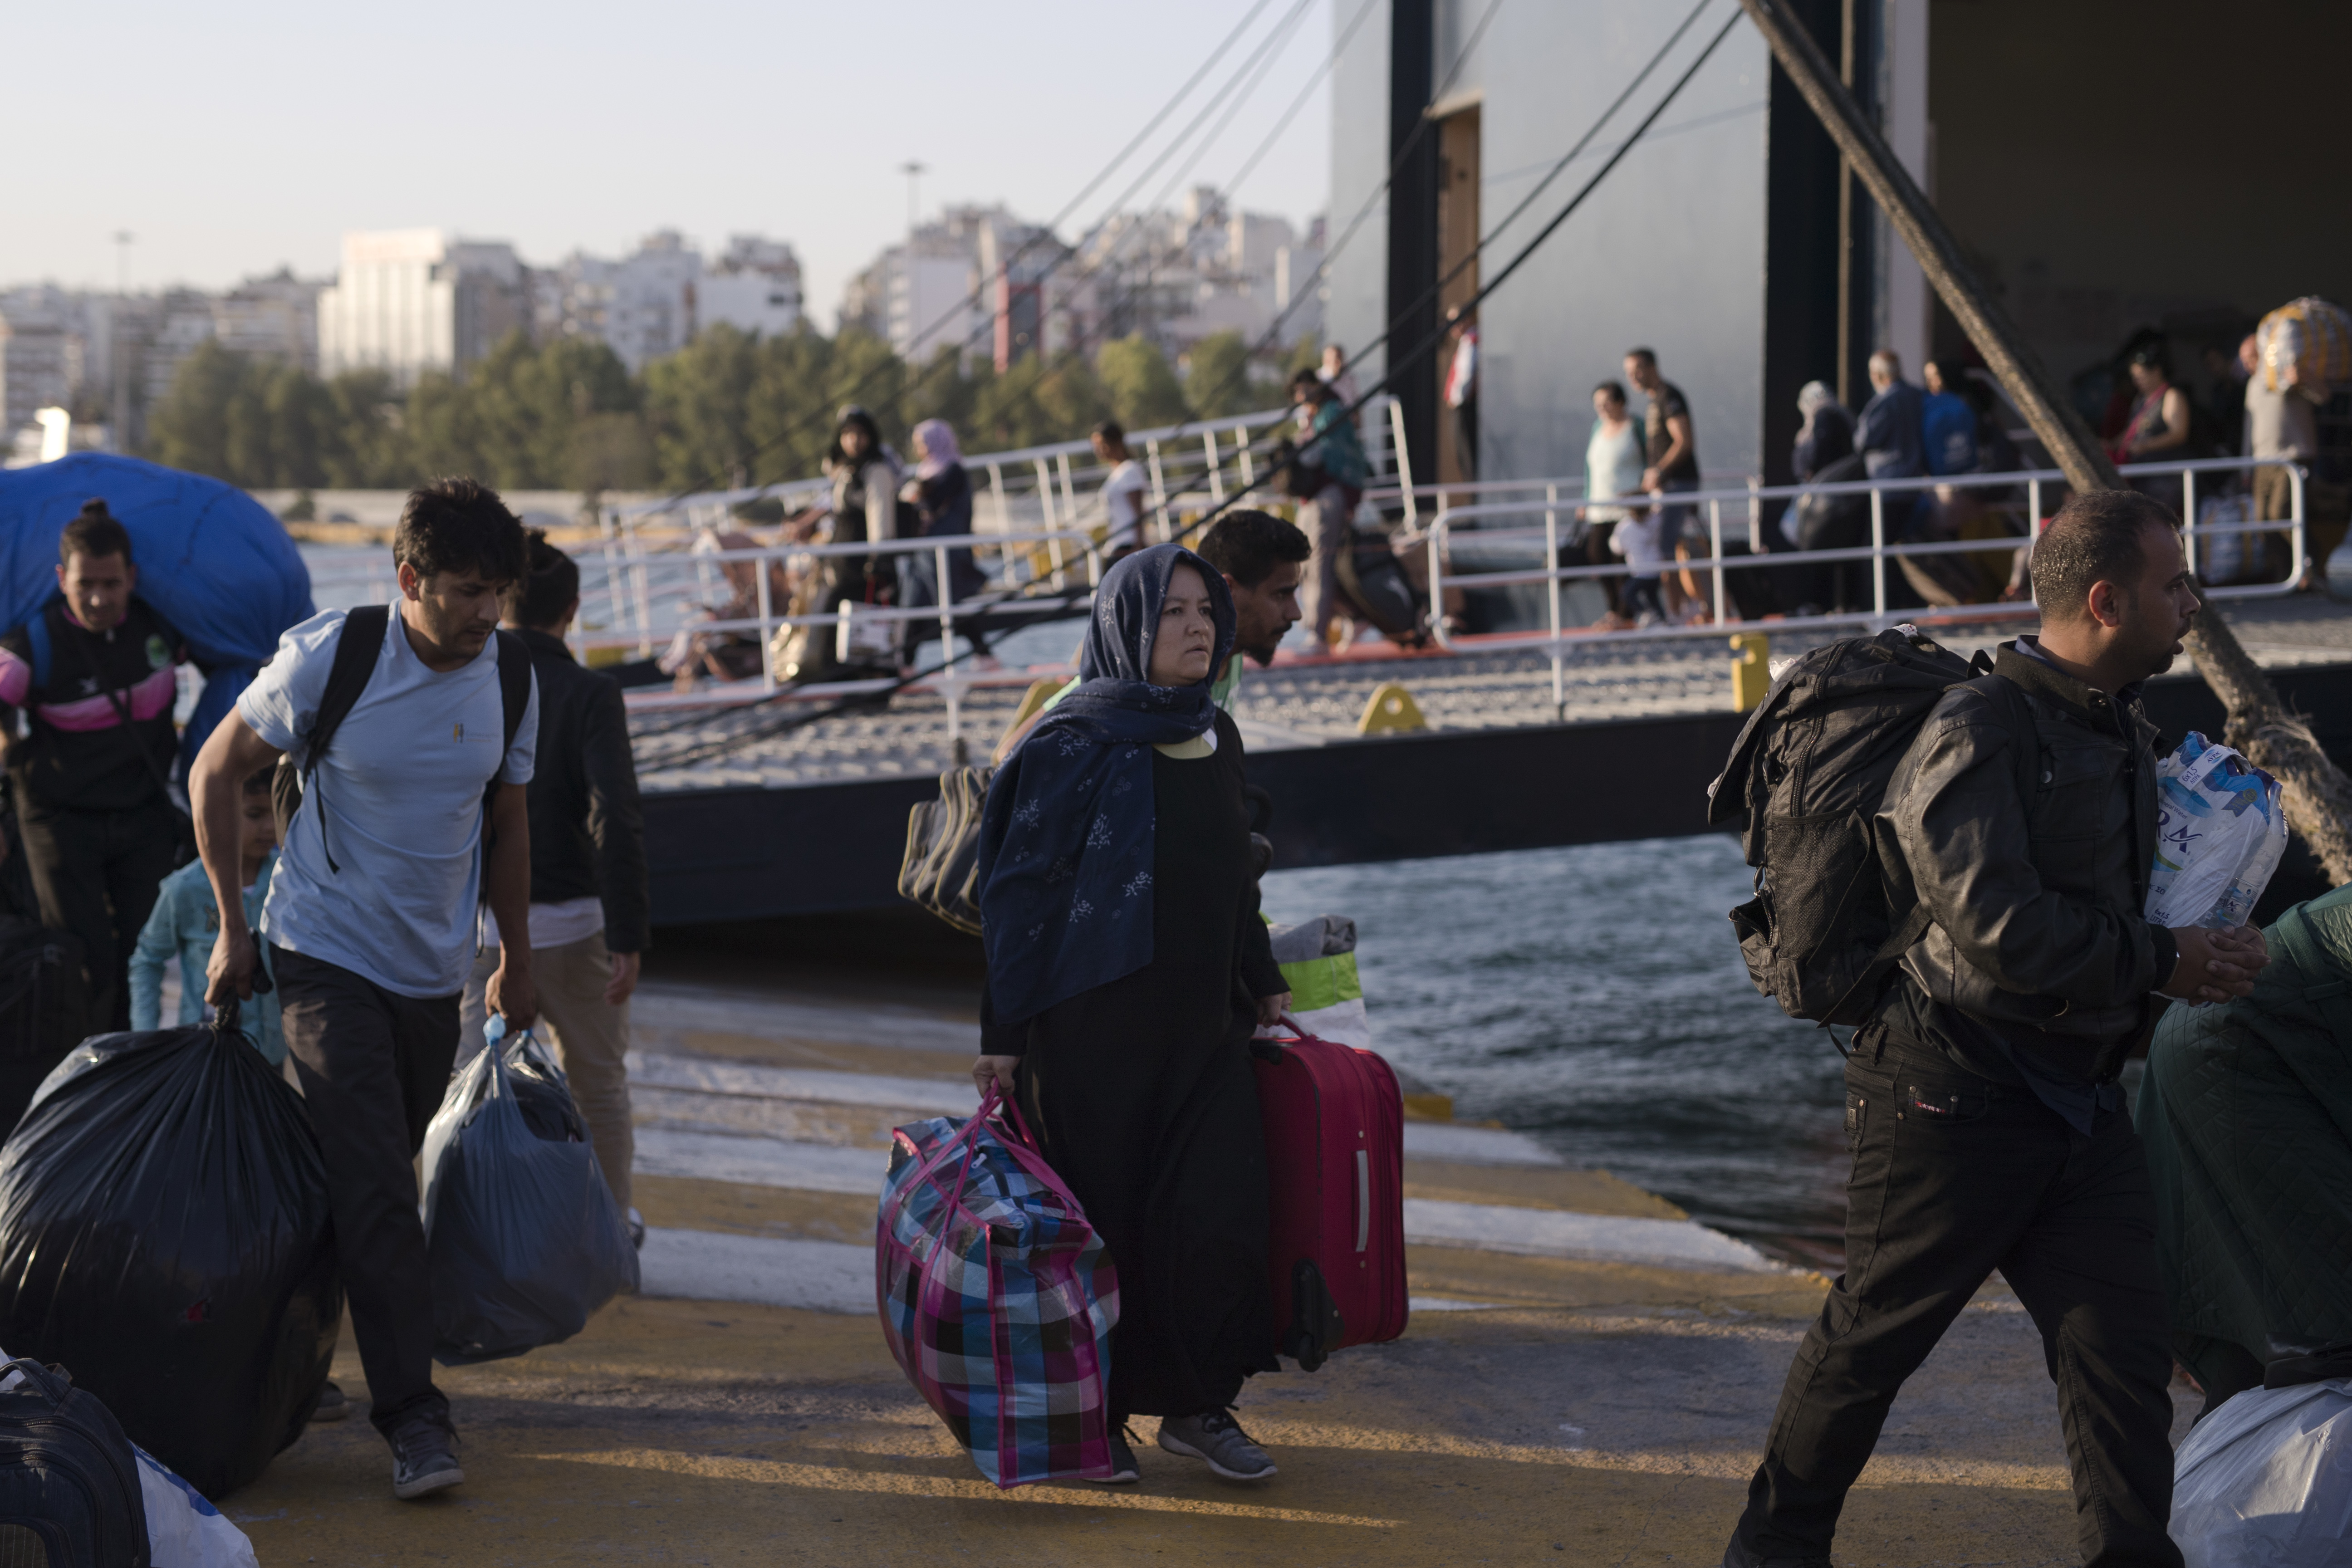 Refugees and migrants carry their belongings after they disembark from a ferry, at the Greece port of Piraeus, near Athens,  Sept. 25, 2018. About 400 migrants and refugees arrived at the port from the island of Lesbos as authorities have been moving...